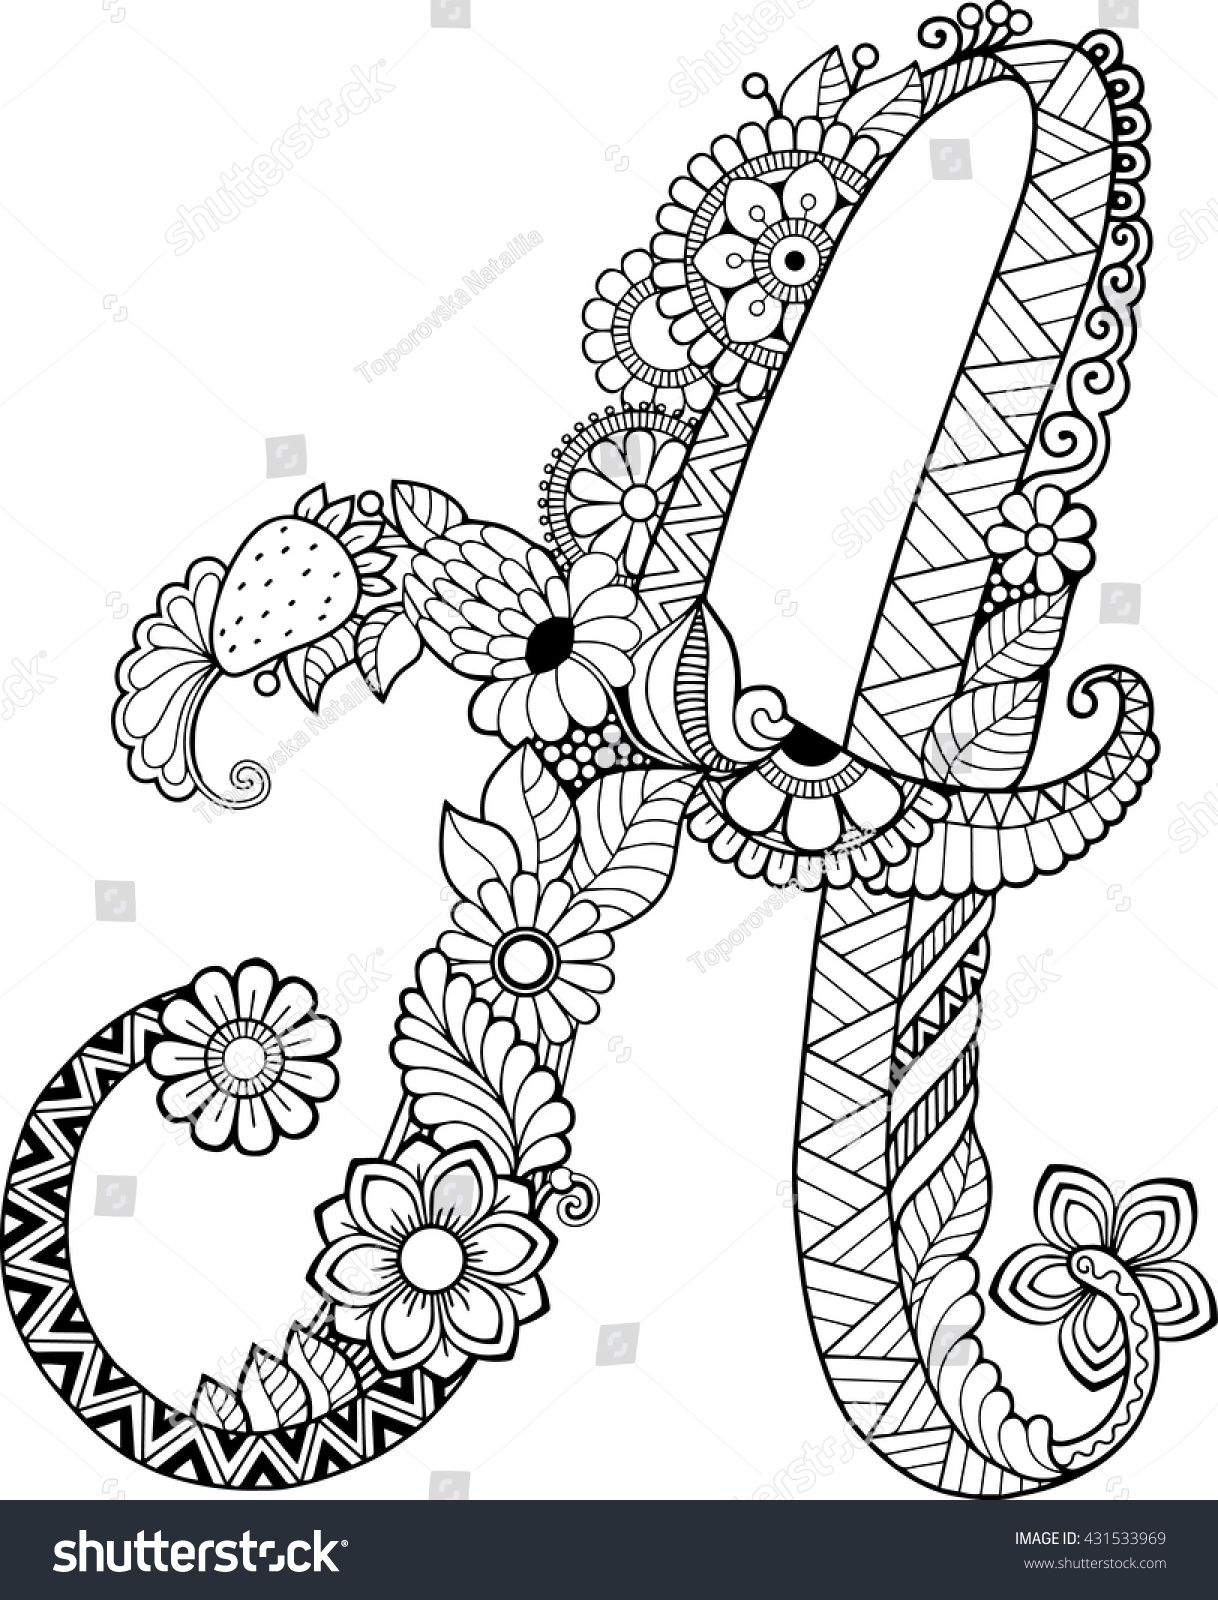 - Coloring Book For Adults. Floral Doodle Letter. Hand Drawn Flowers